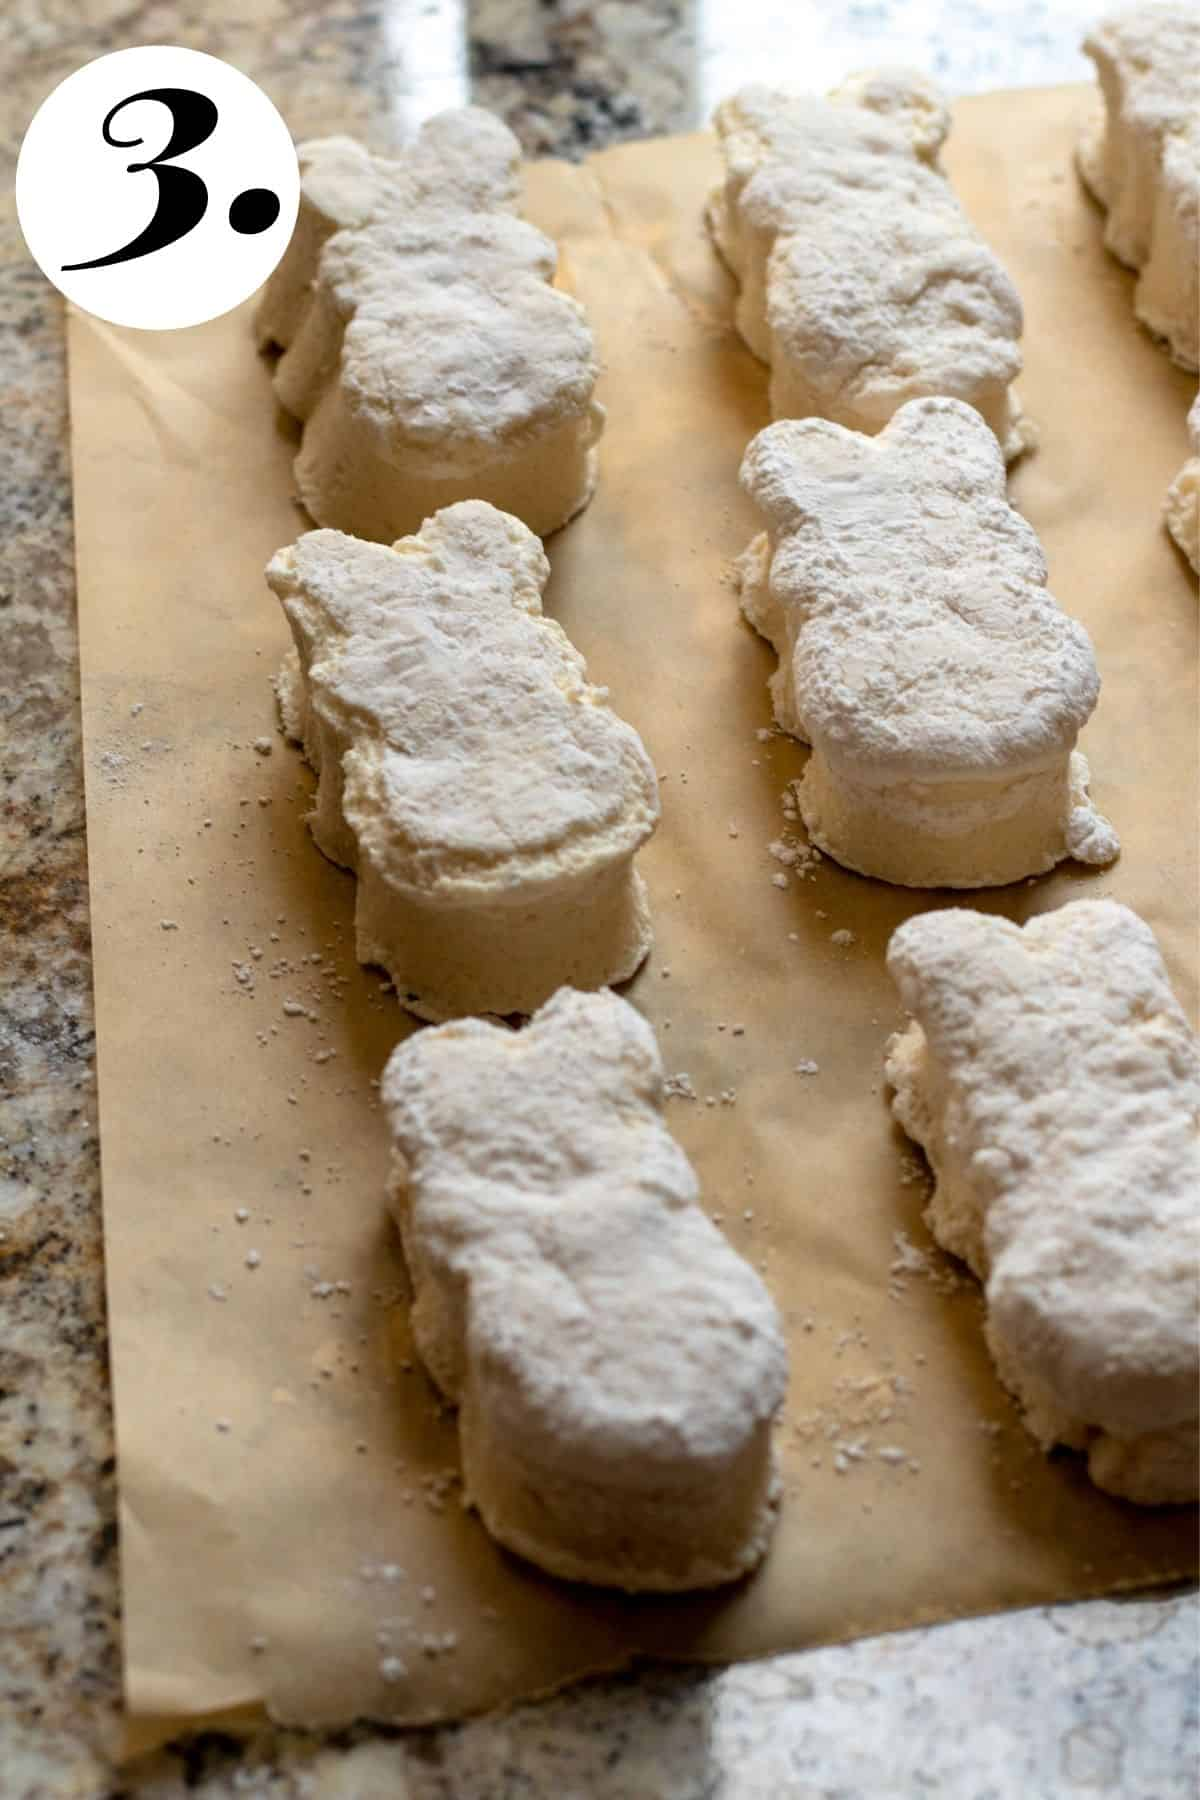 Peeps before being sugared on parchment paper.